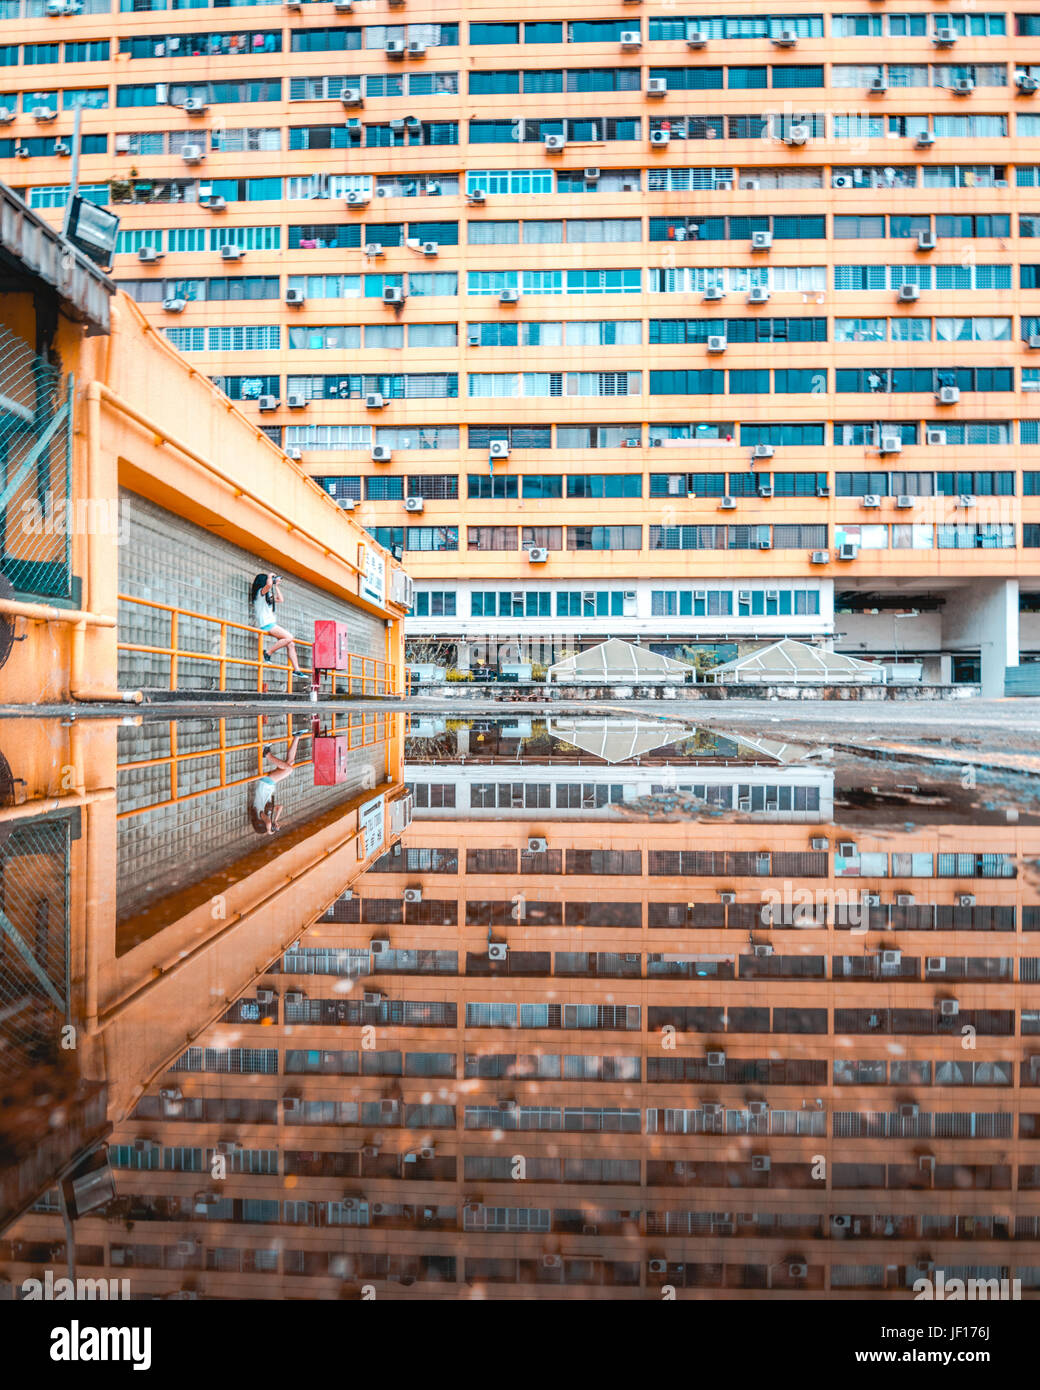 SINGAPORE: People's Park Complex.  MIND-BLOWING images show what looks like a science fiction megacity is in - Stock Image